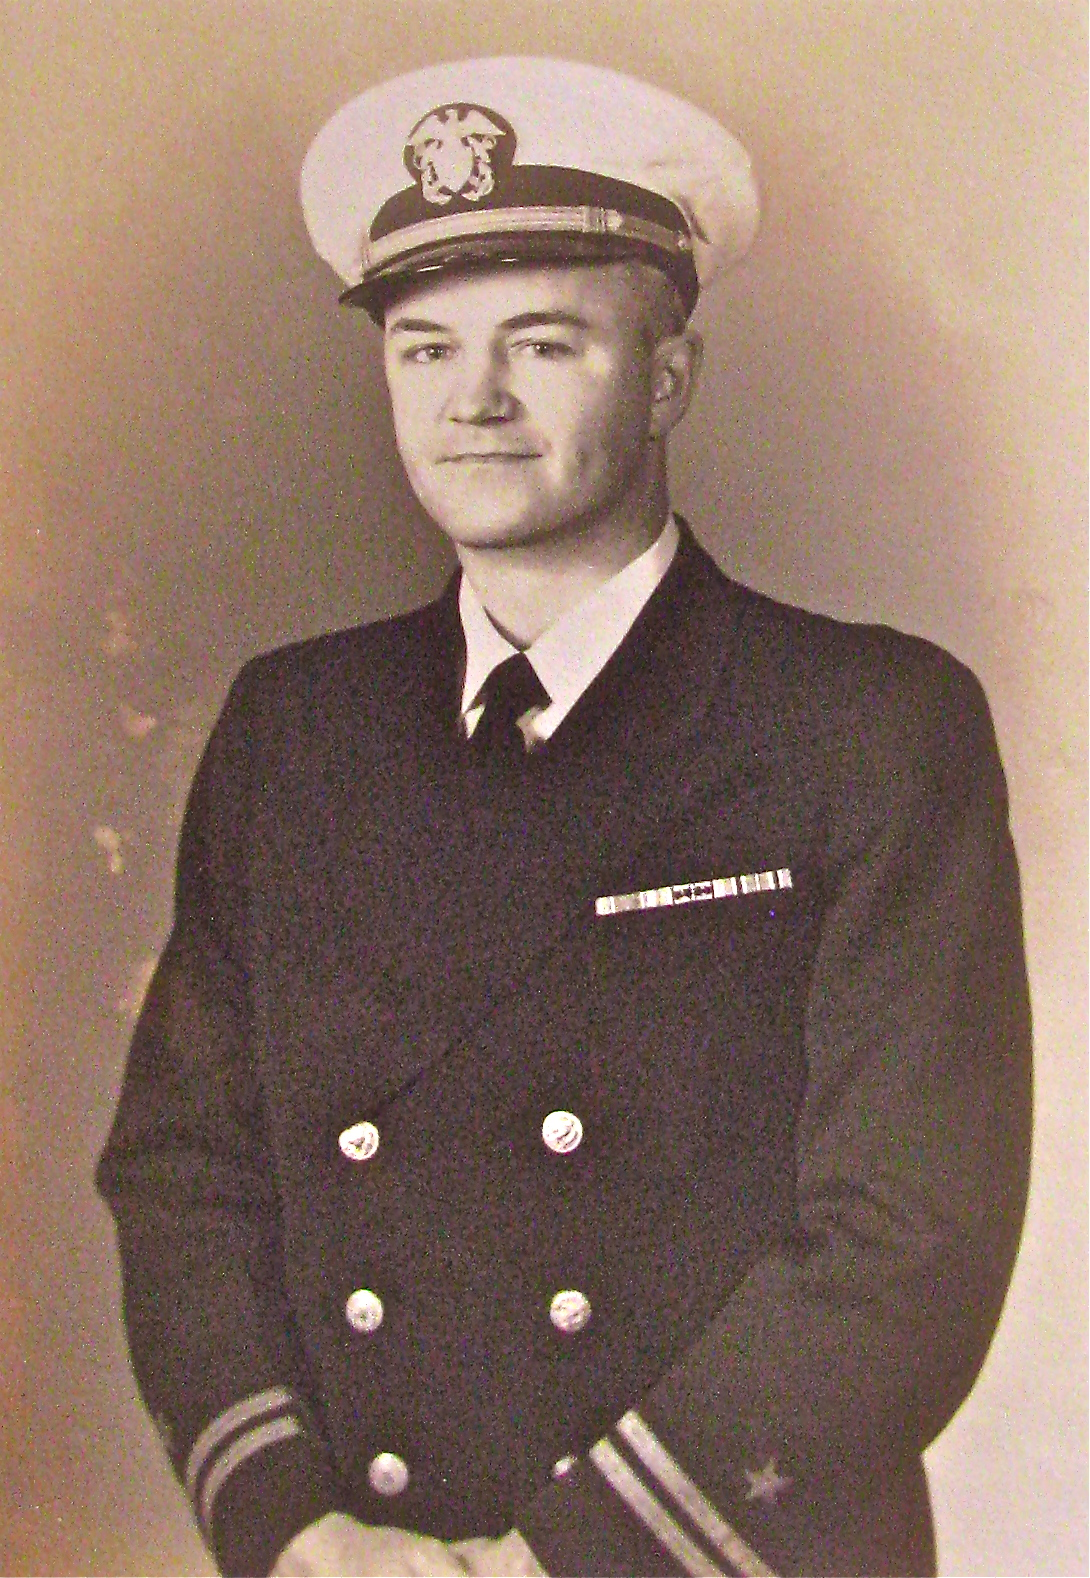 ... pictured in his Navy dress uniform during World War II. Photo provided